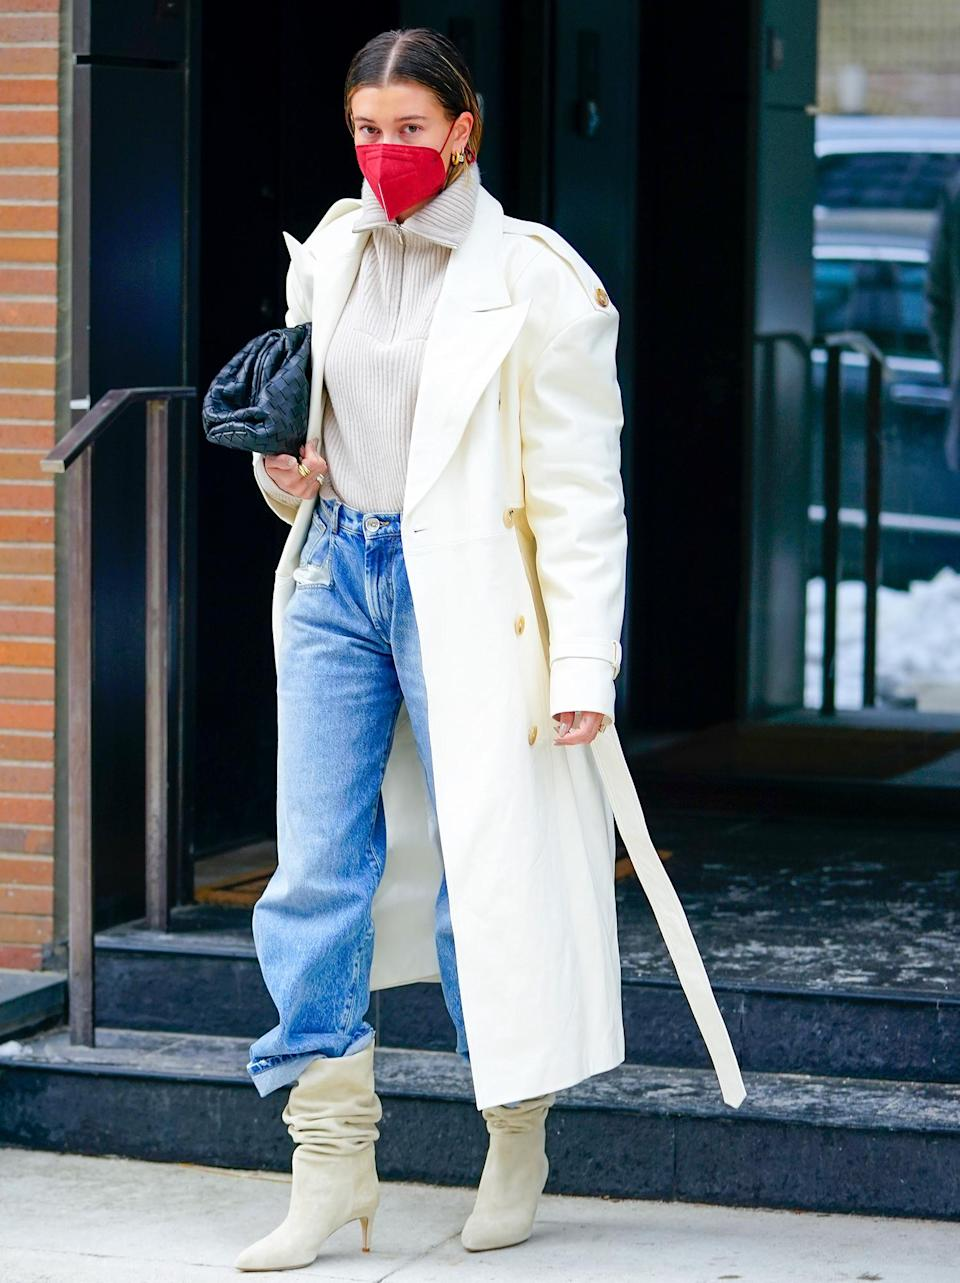 <p>Hailey Bieber looks incredibly chic in a long white coat, jeans and slouchy boots while headed to the studio in N.Y.C. on Monday.</p>